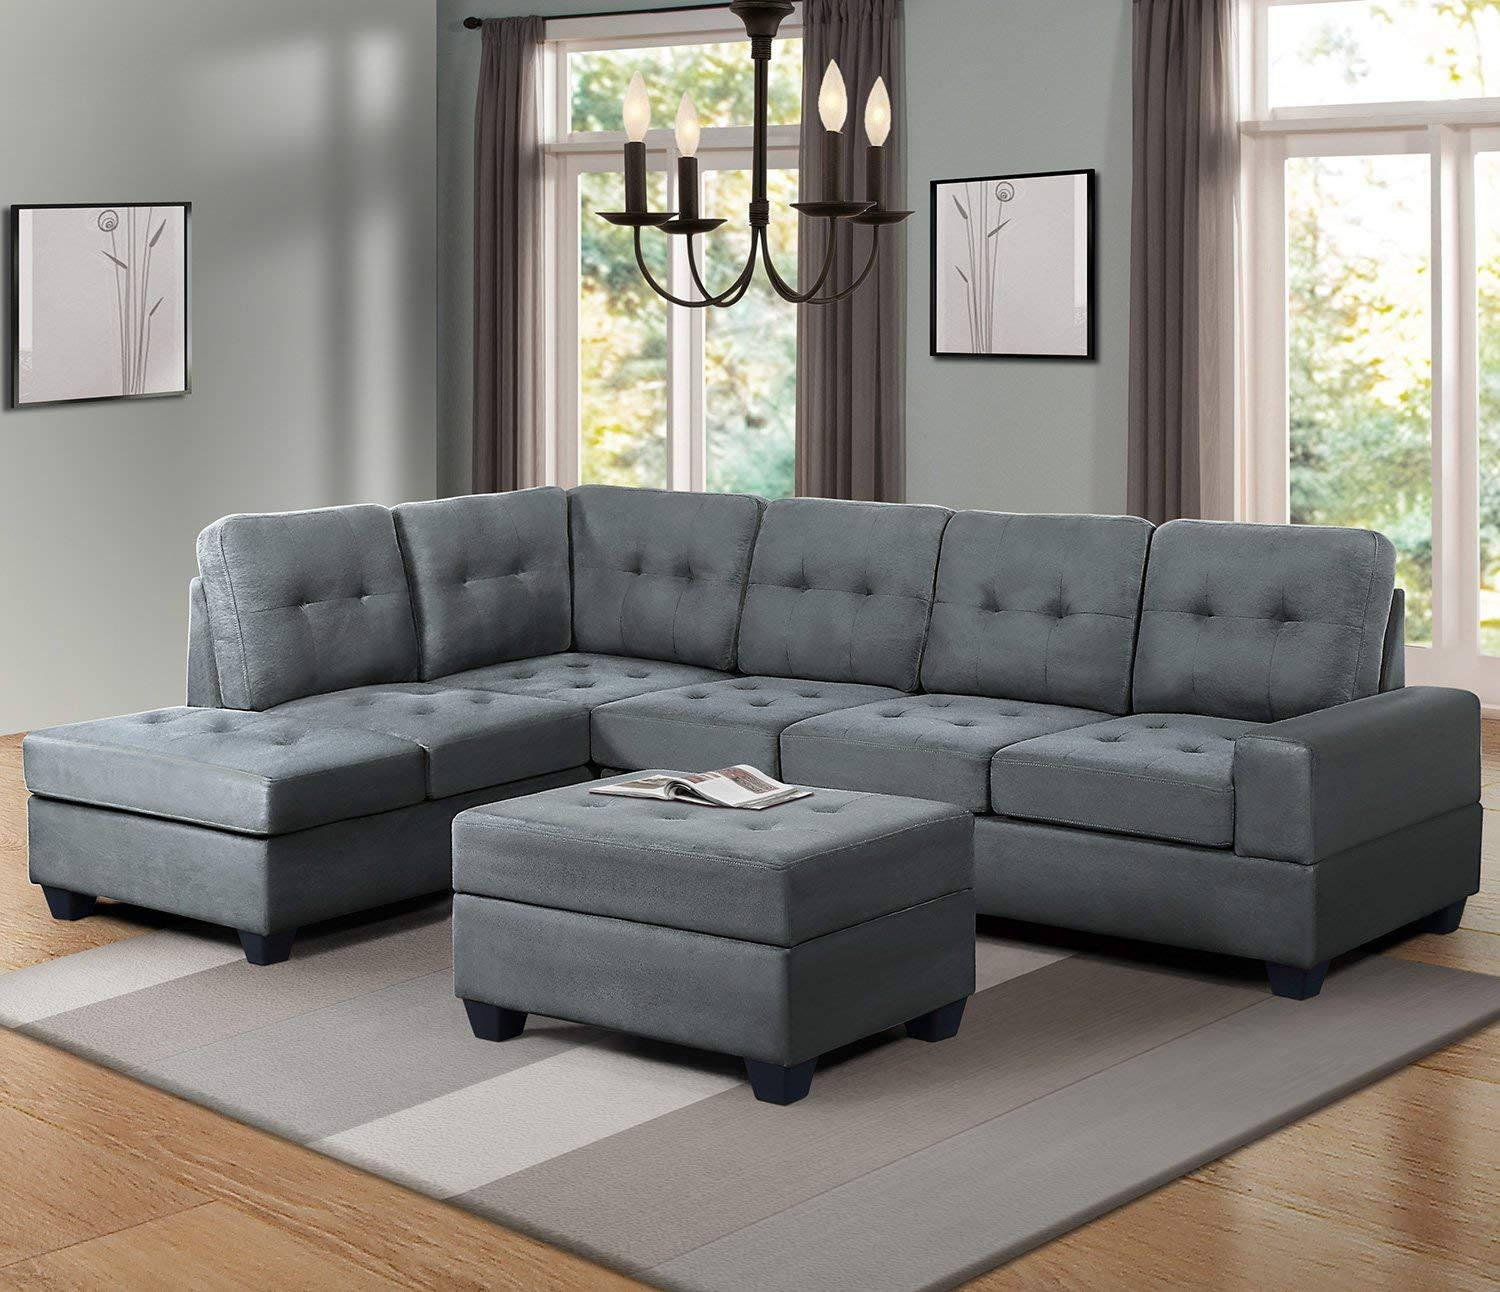 Harper & Bright Designs Sectional Sofa 3-Piece with Storage Ottoman Reversible Chaise Lounge and Cup Holder Living Room Sofa Couches by Harper & Bright Designs